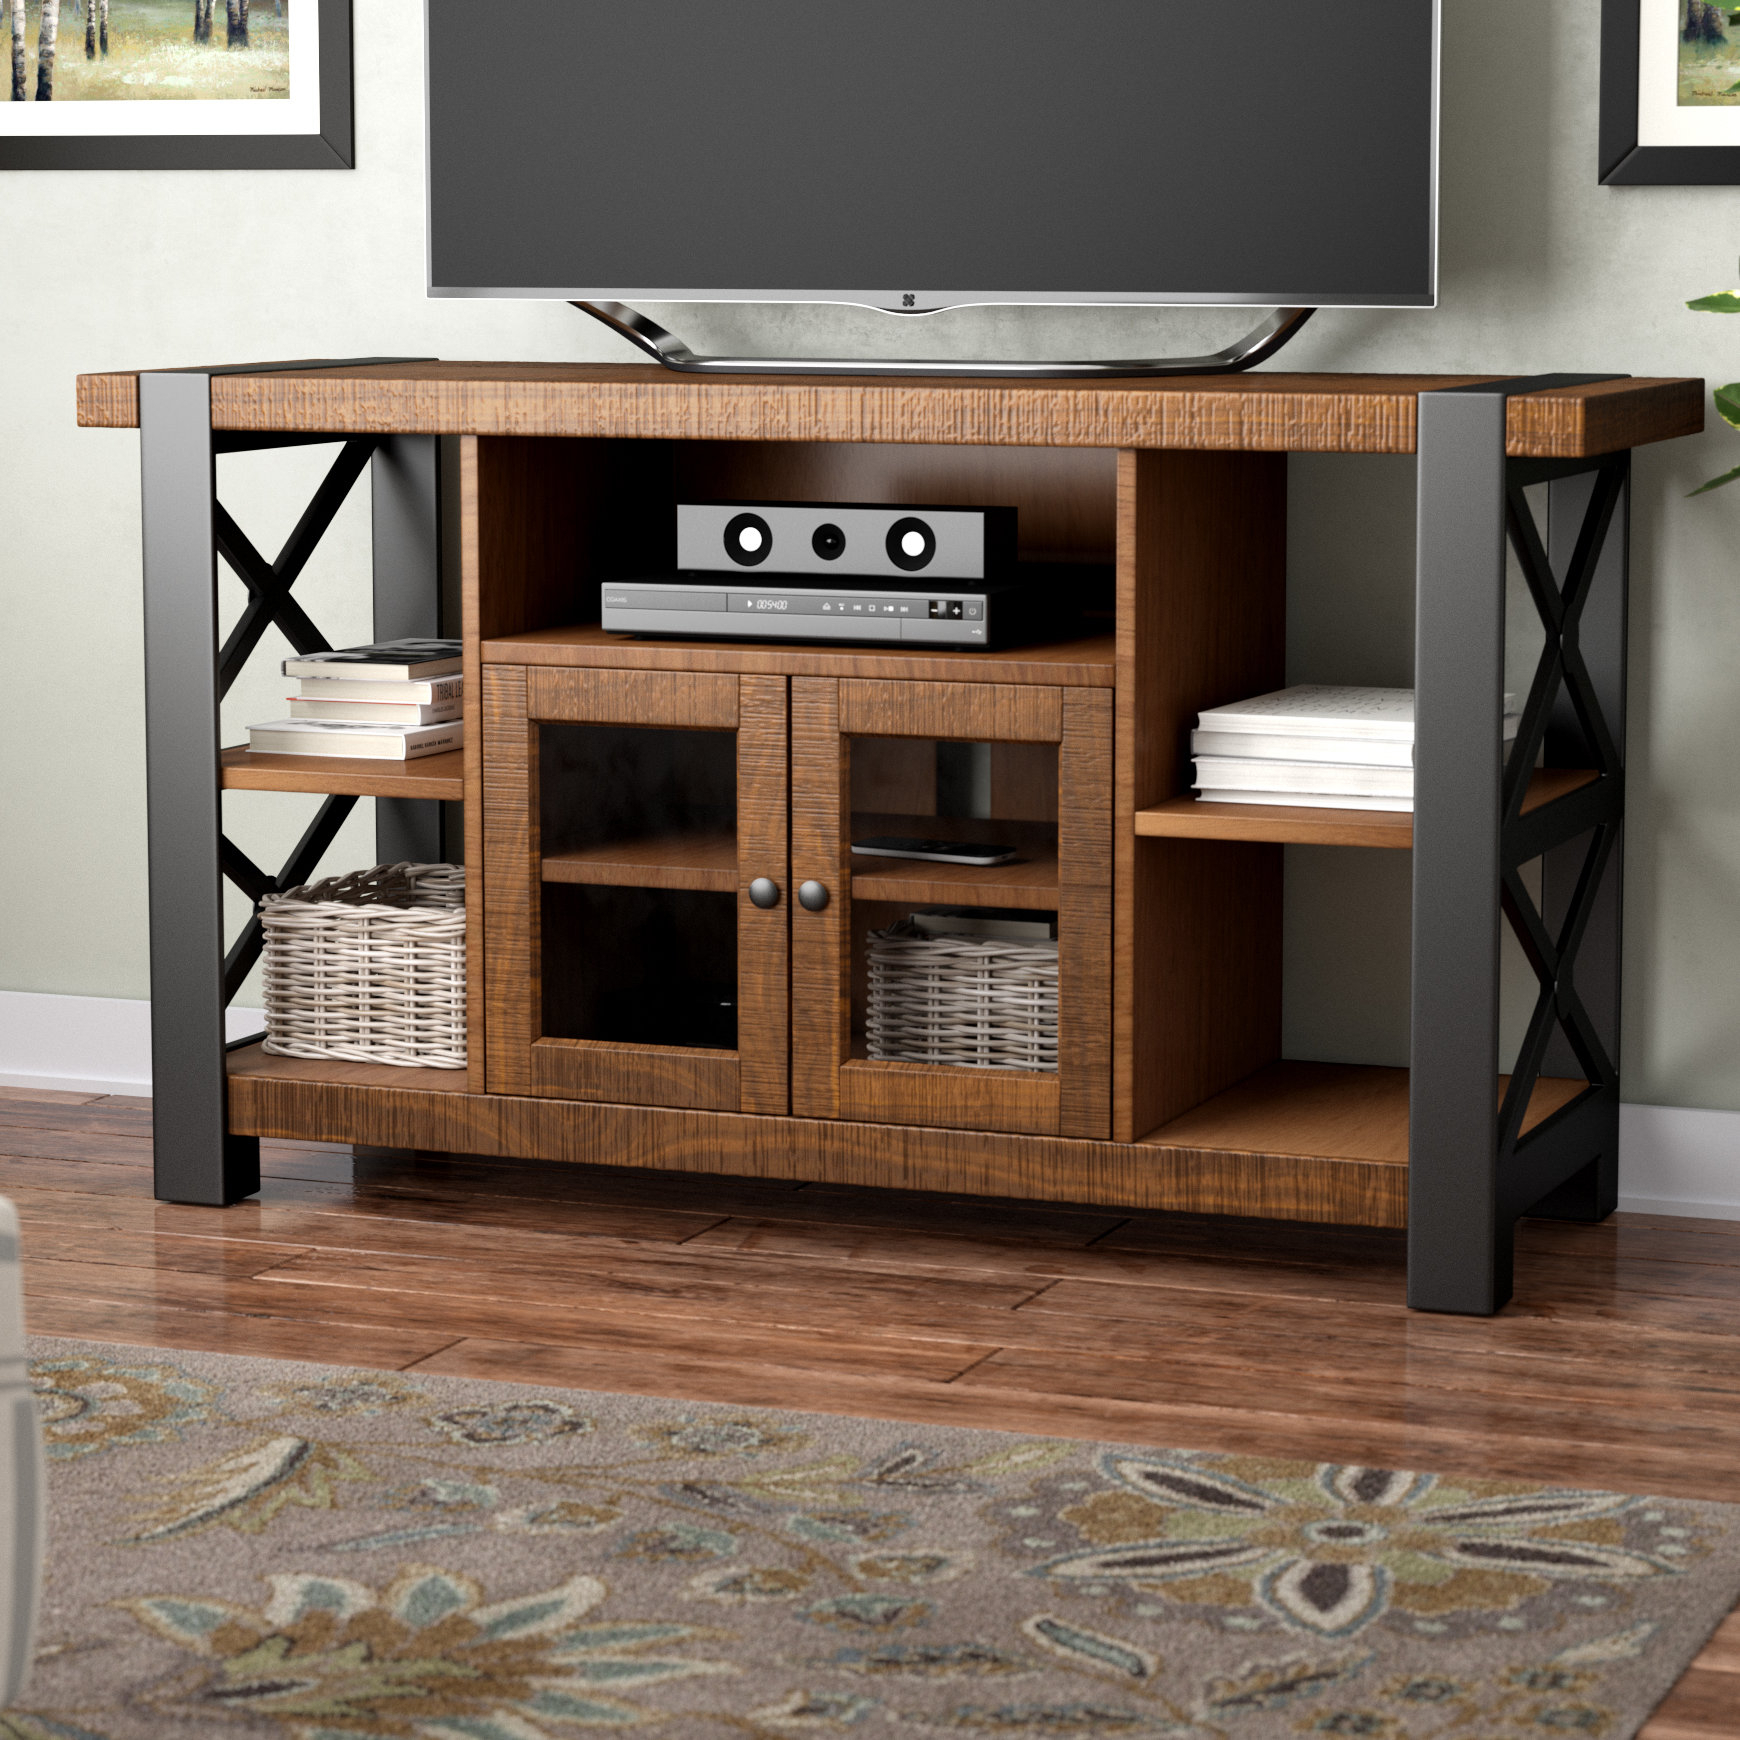 Tv Stands & Entertainment Centers You'll Love | Wayfair Inside Sinclair Blue 54 Inch Tv Stands (View 15 of 30)